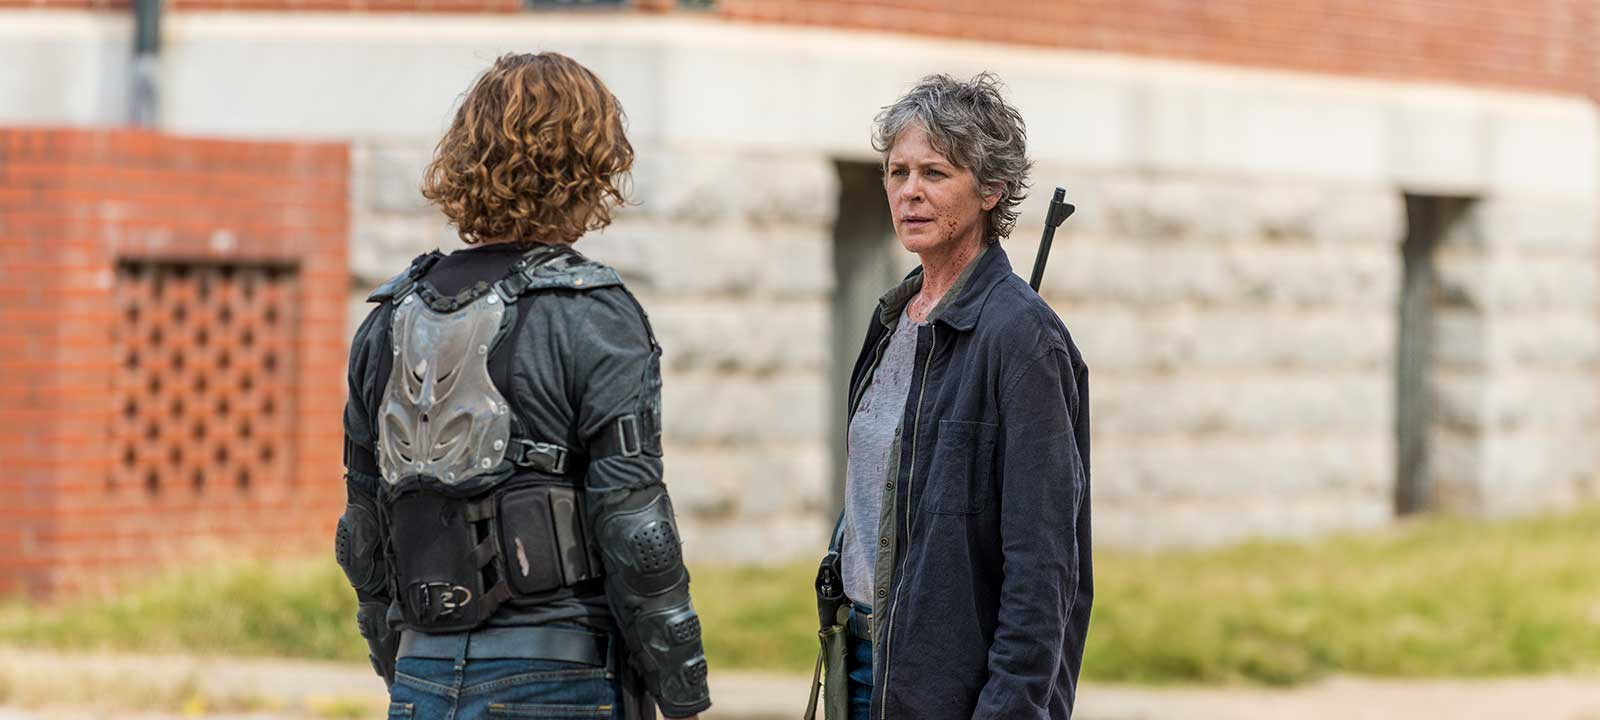 the-walking-dead-episode-713-benjamin-miller-carol-mcbride-800×600-interview